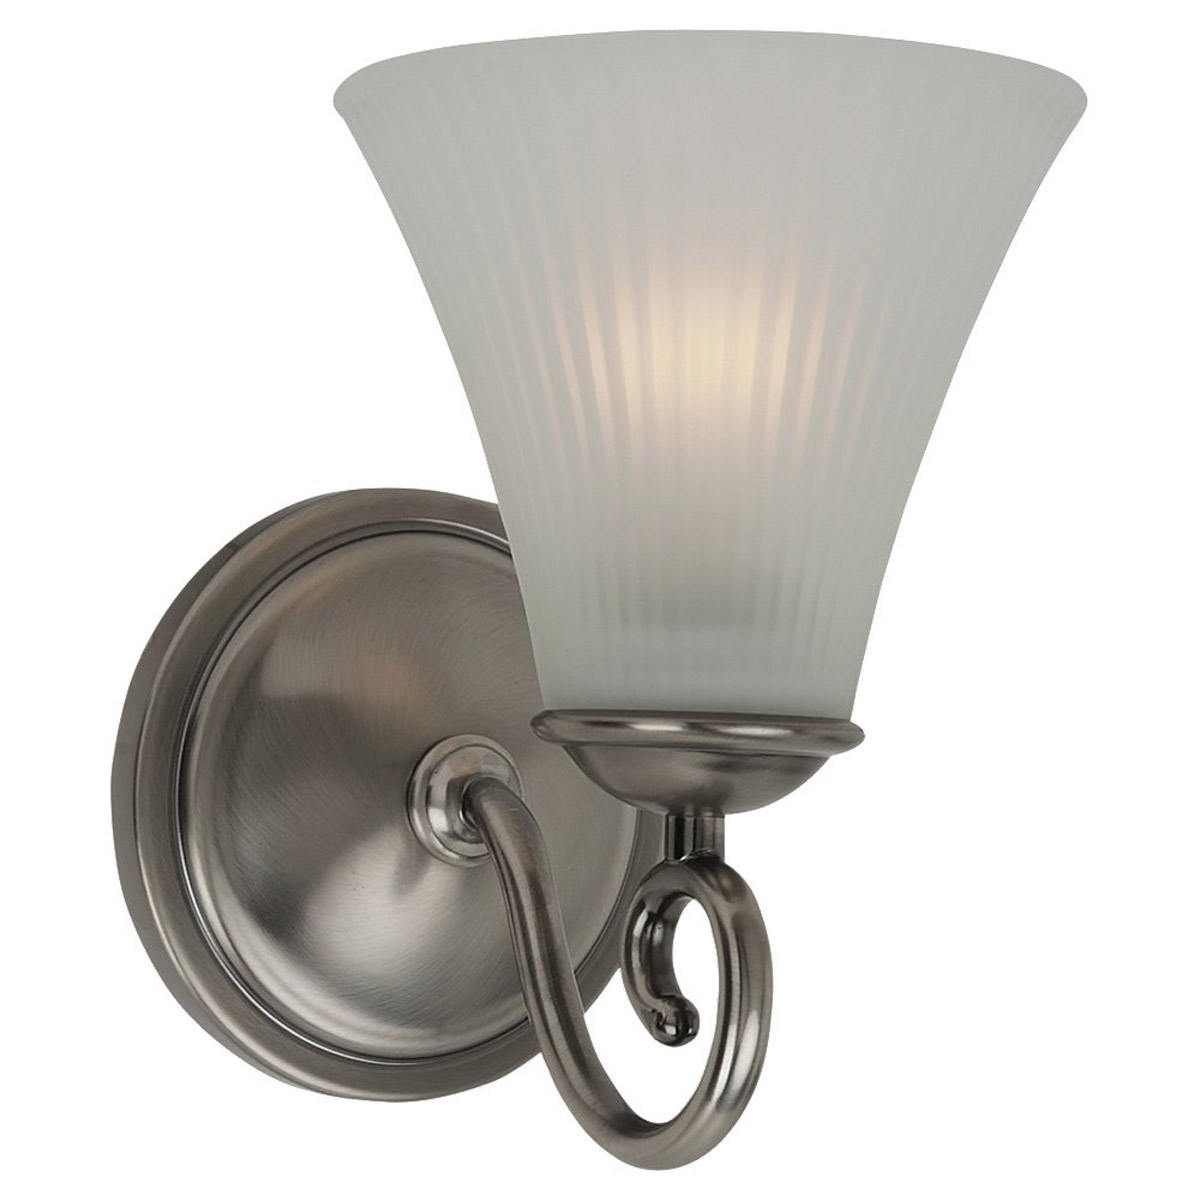 Sea Gull Lighting Joliet 1 Light Bath Vanity in Antique Brushed Nickel 44935-965